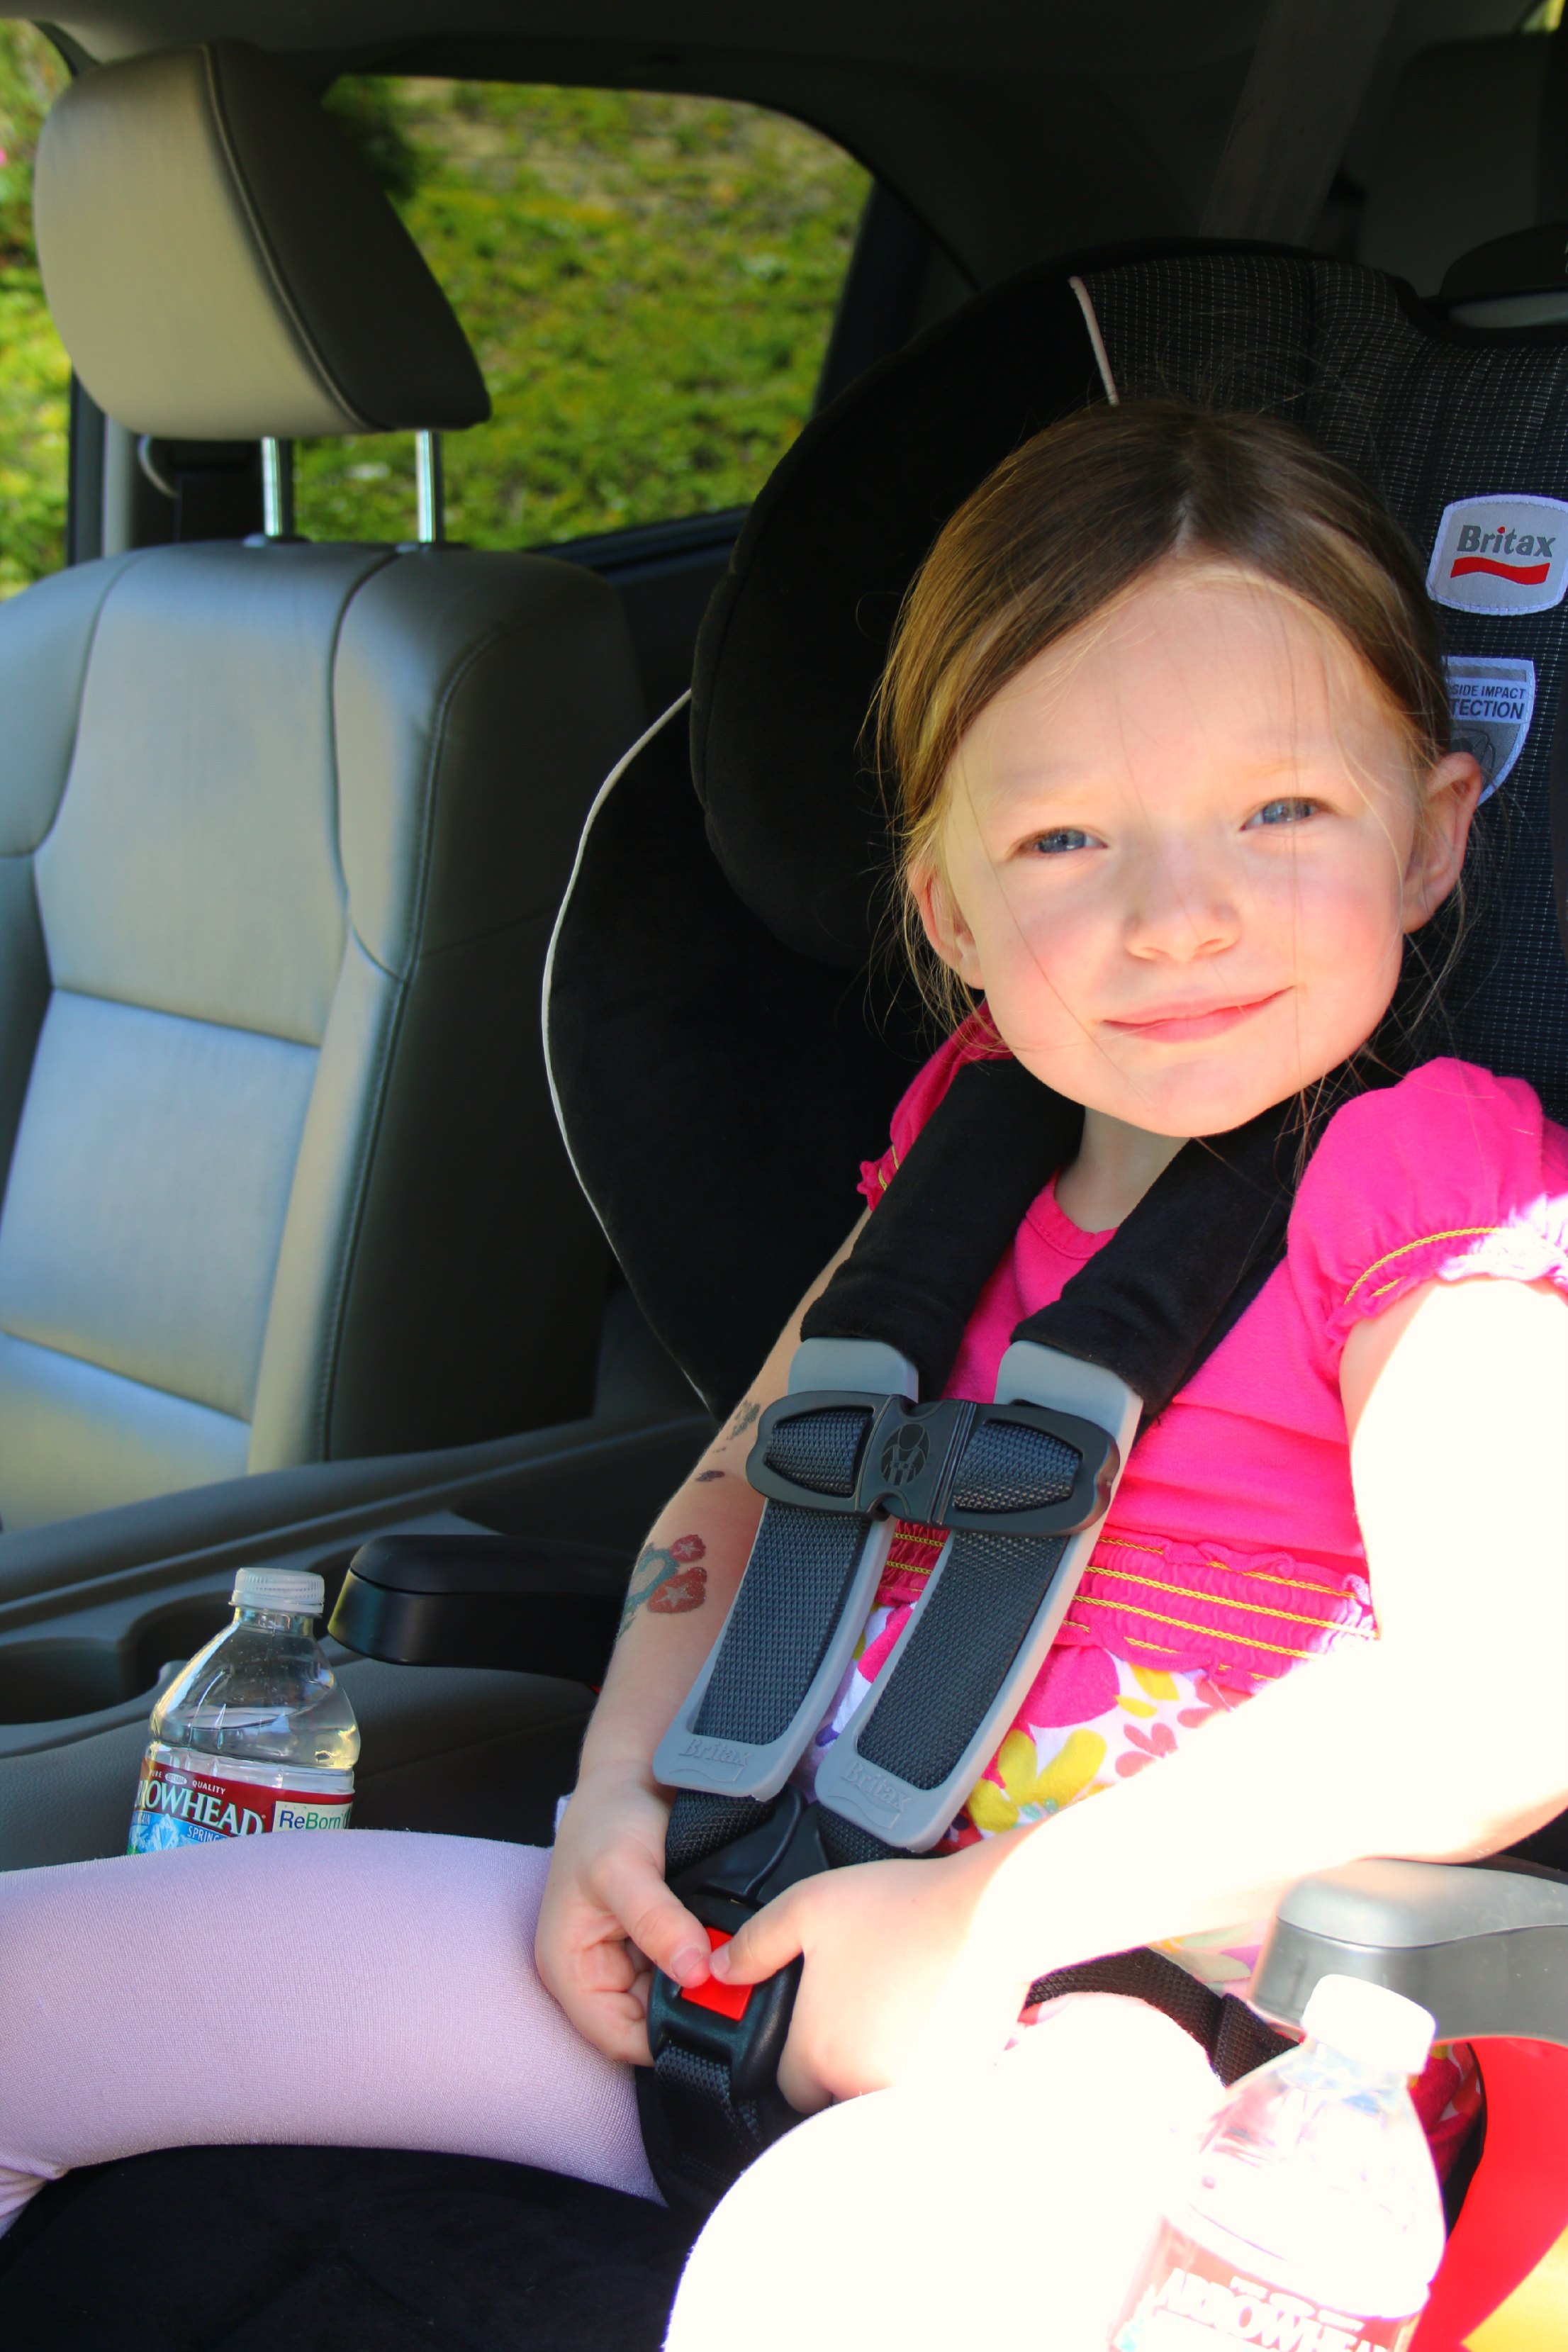 Our Favorite Car Seat Britax Frontier 90 Booster Full REVIEW